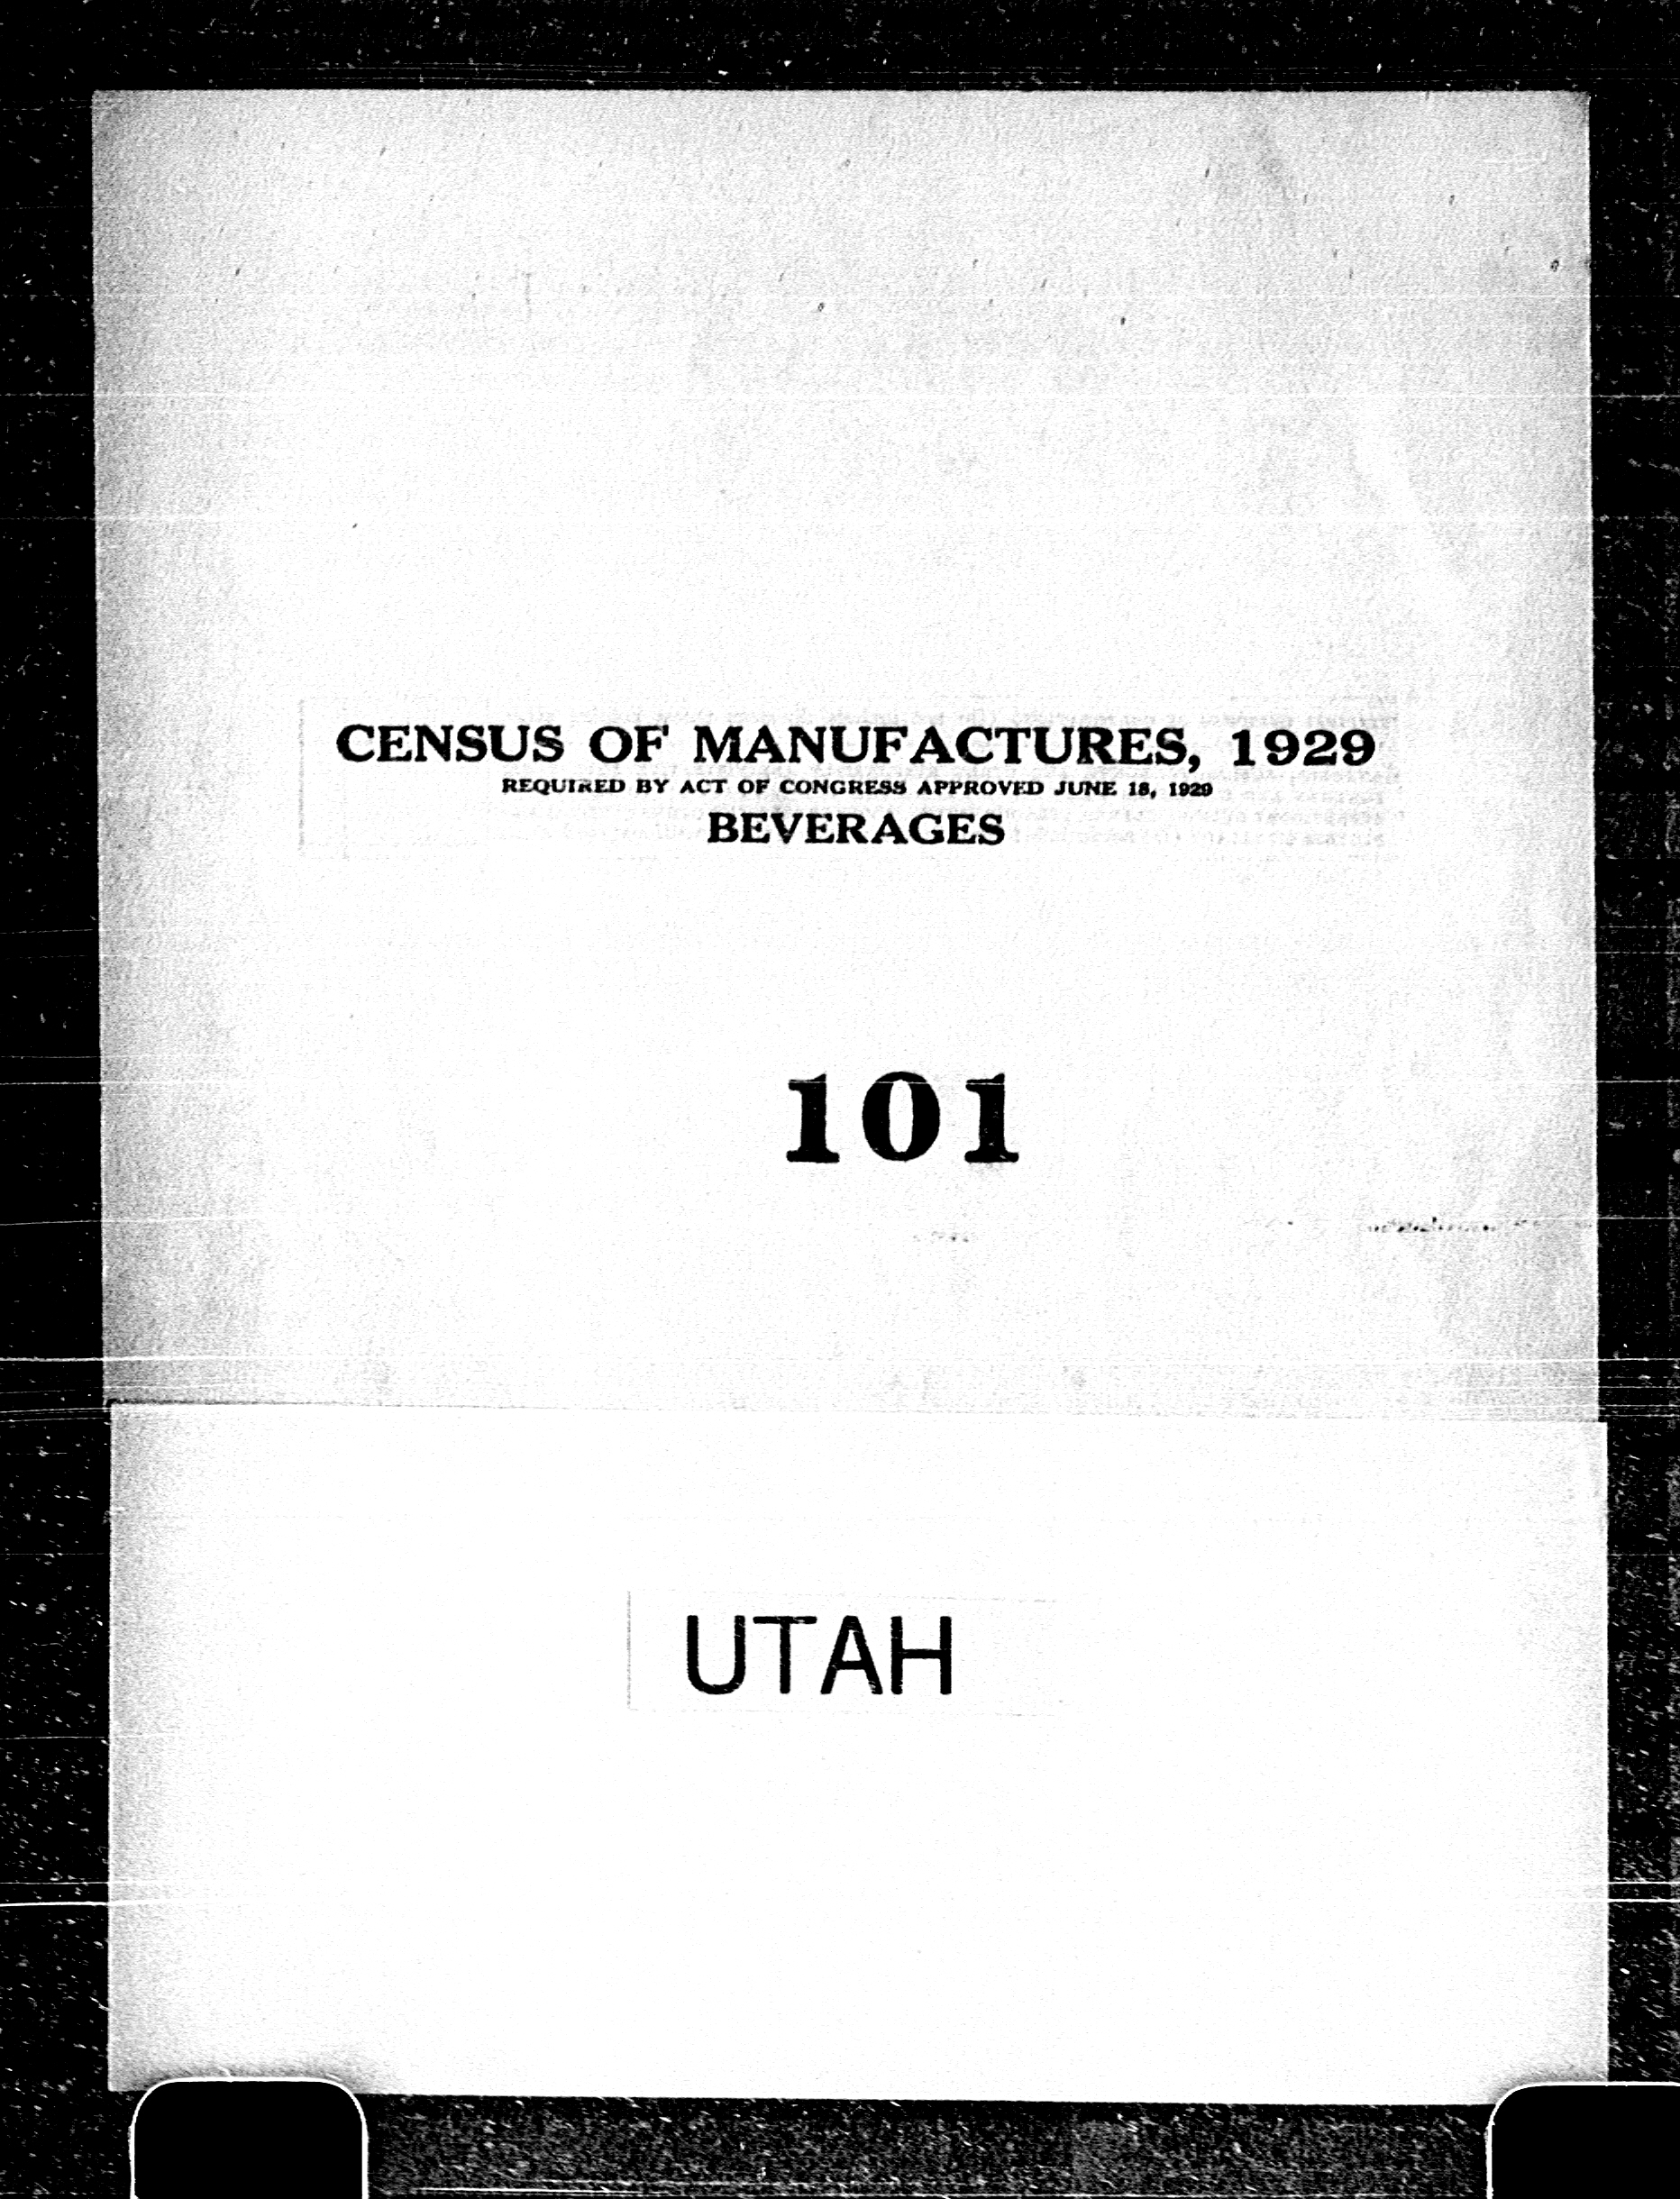 Utah: Industry No. 101 - Beverages